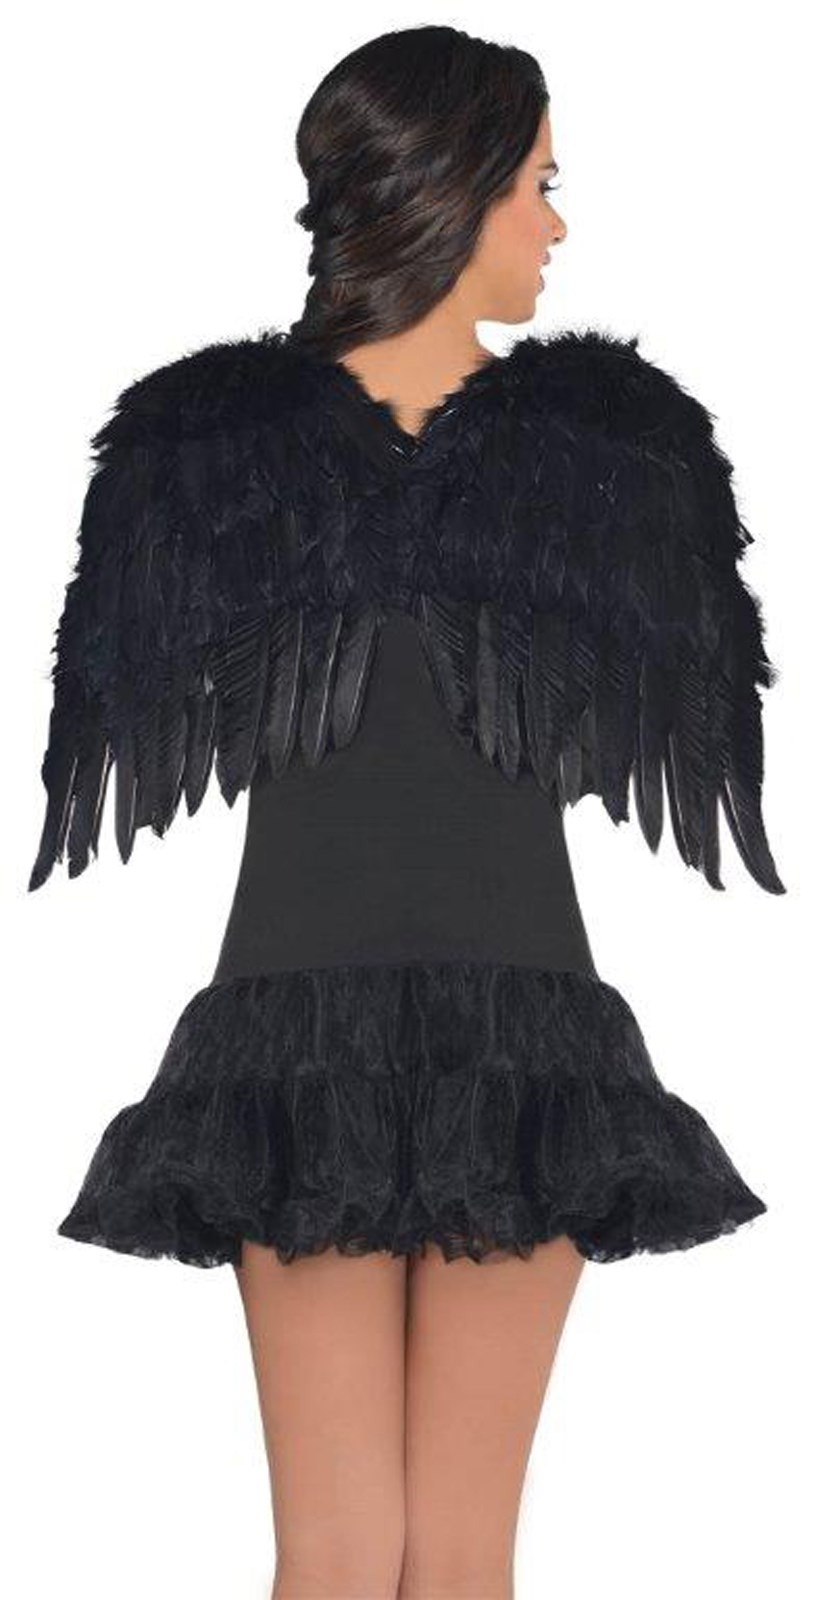 Image of Black Deluxe Feather Angel Accessory Kit (Adult)